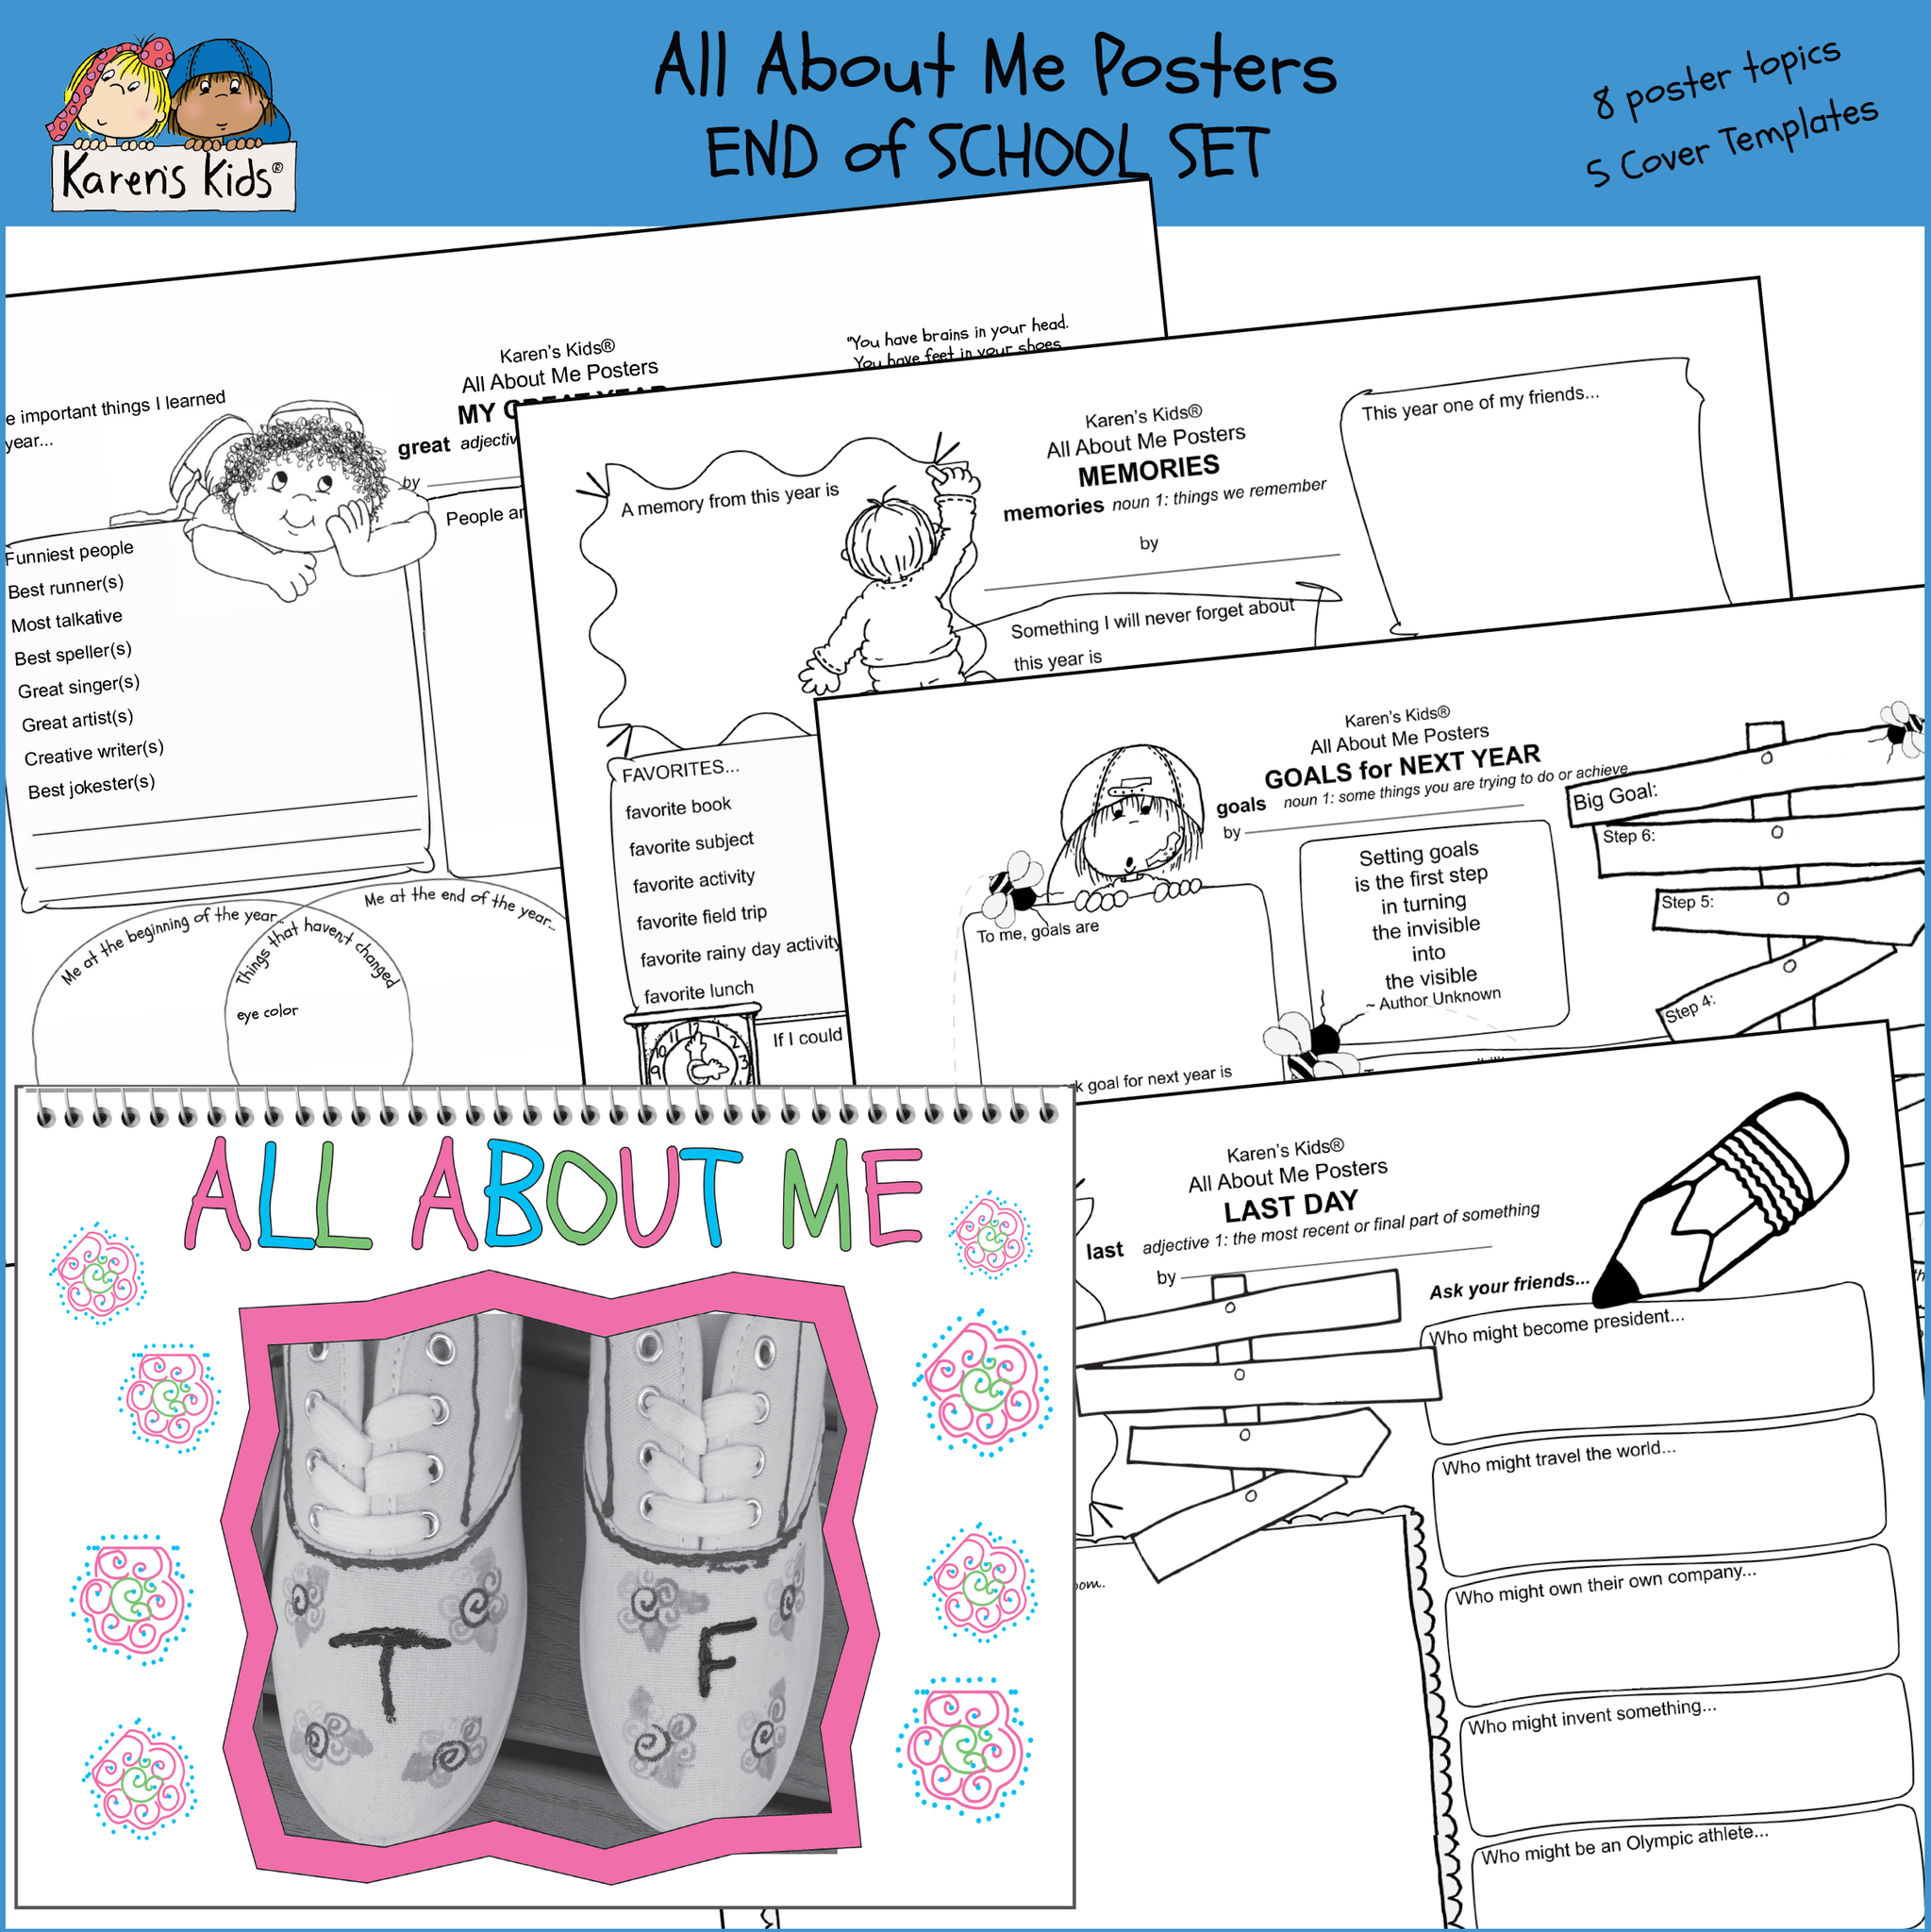 photograph regarding All About Me Poster Printable known as POSTER All More than Me Posters Conclude of Calendar year Mounted Printables